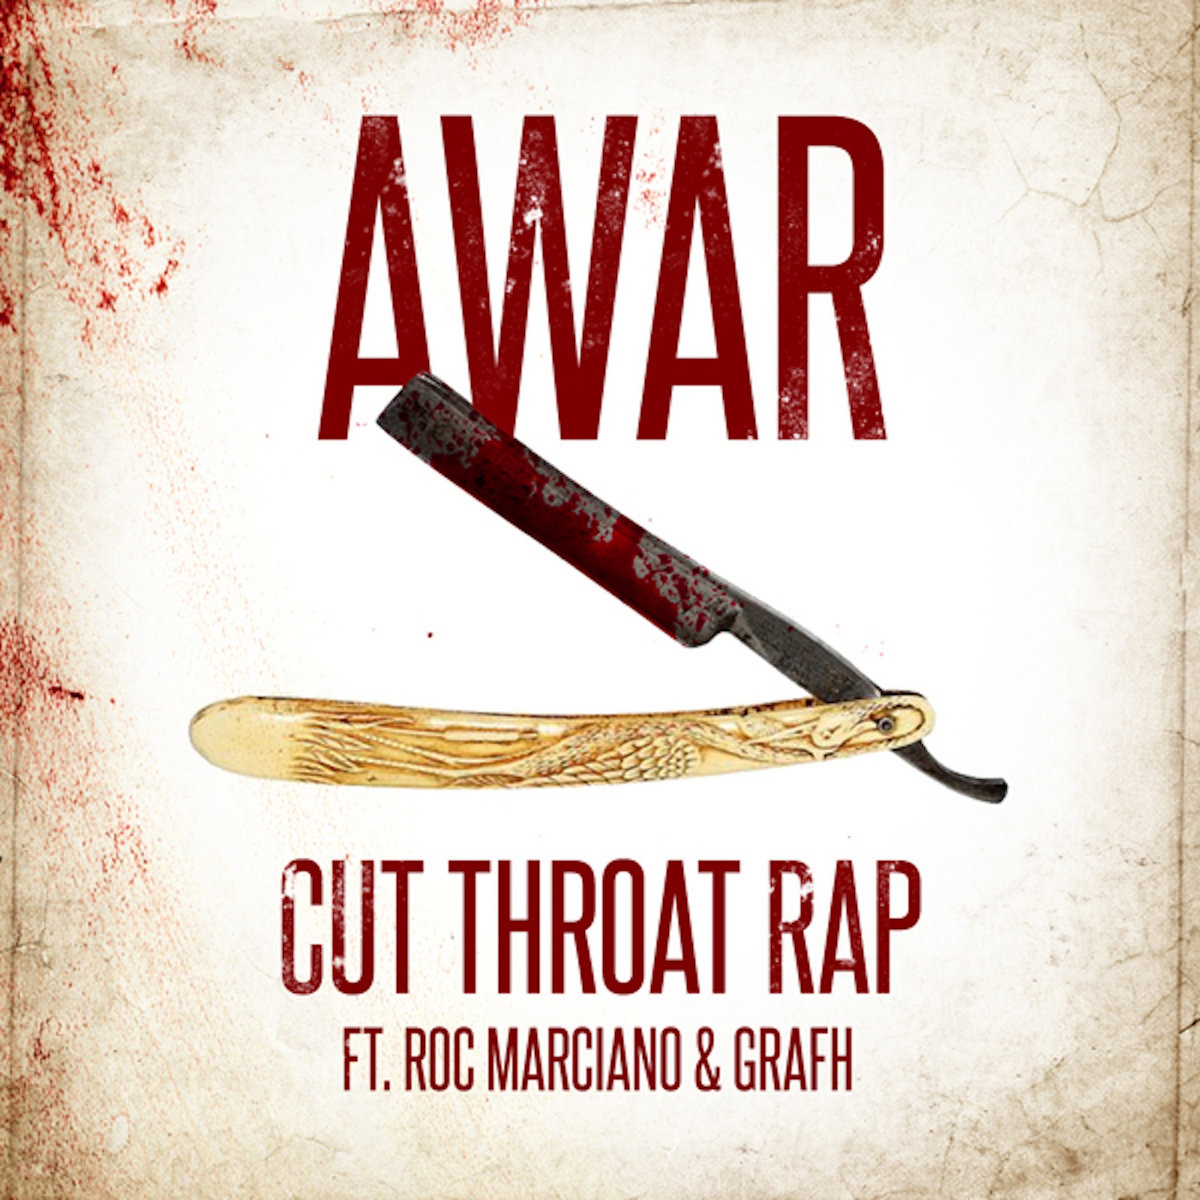 Cut Throat Rap Feat Roc Marciano Grafh Produced By